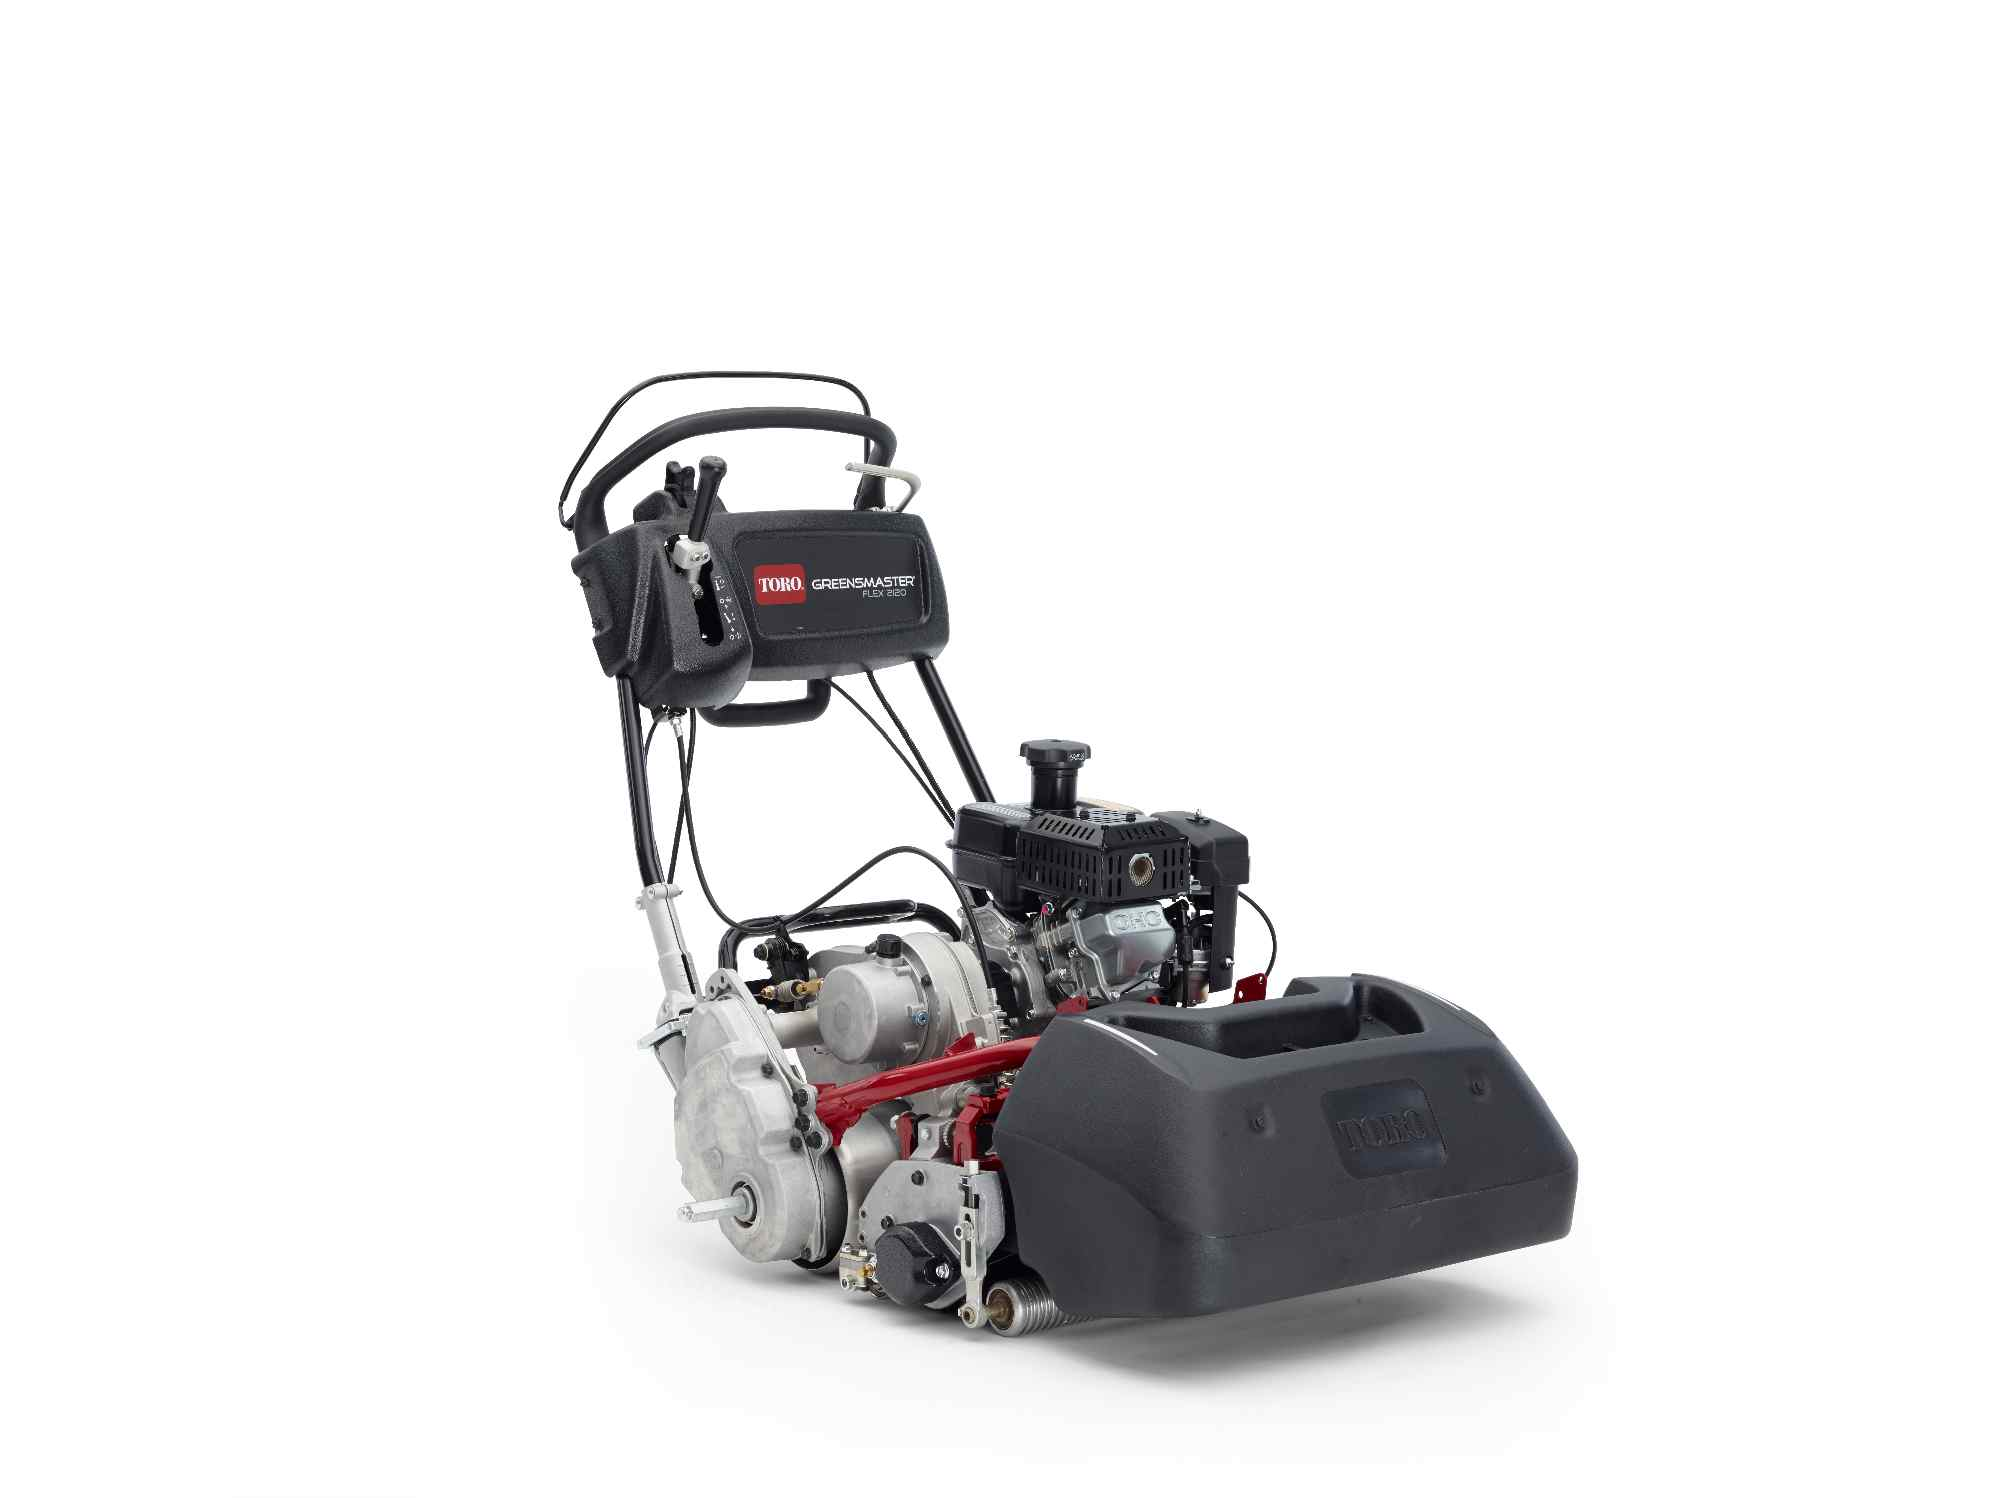 The new Toro® Greensmaster Flex™ 2120 provides a precise cut and easy operation